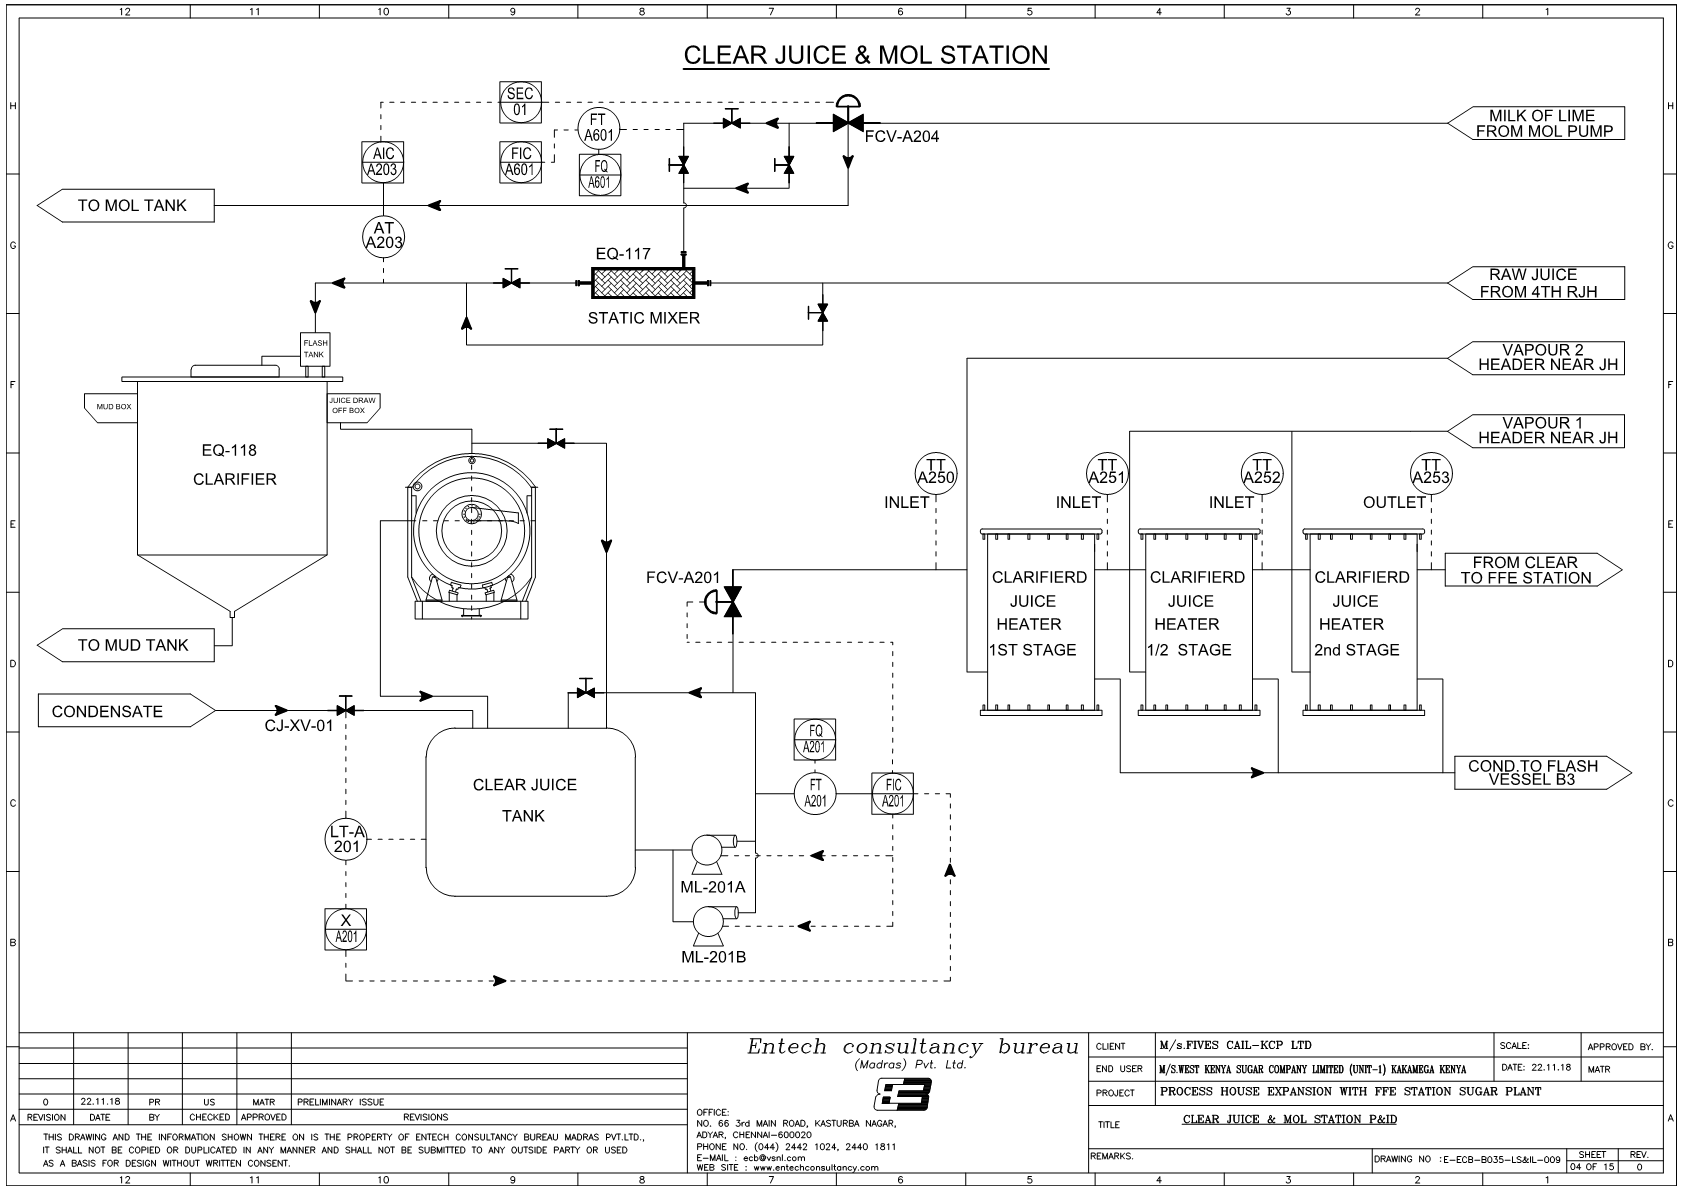 Piping & Instrumentation Diagram (P&I D)